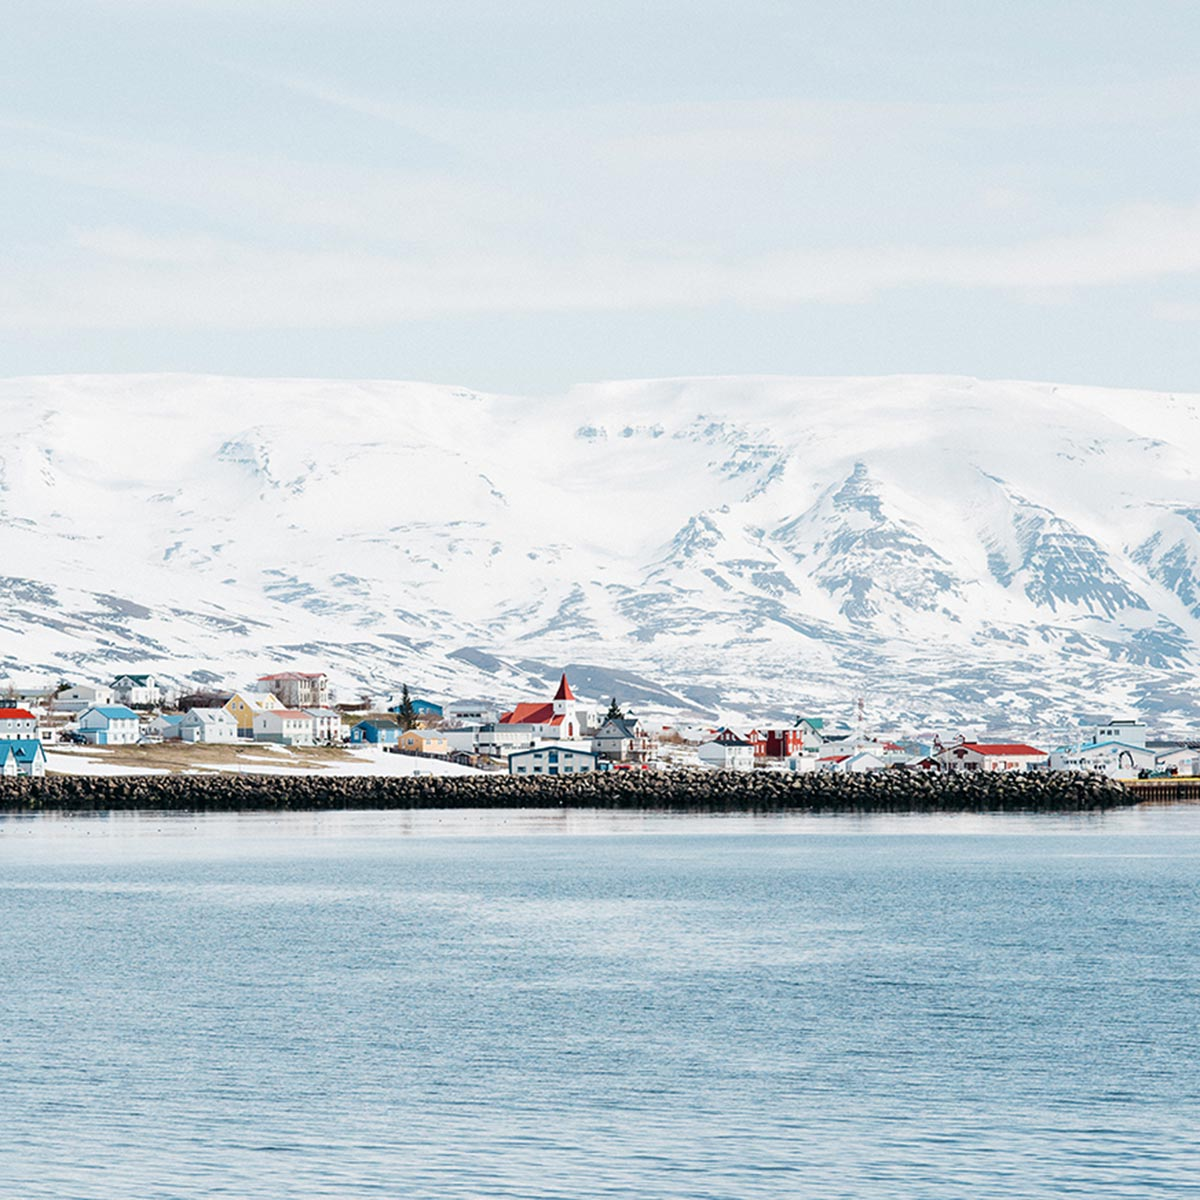 photo of coastal town set against snowy mountains